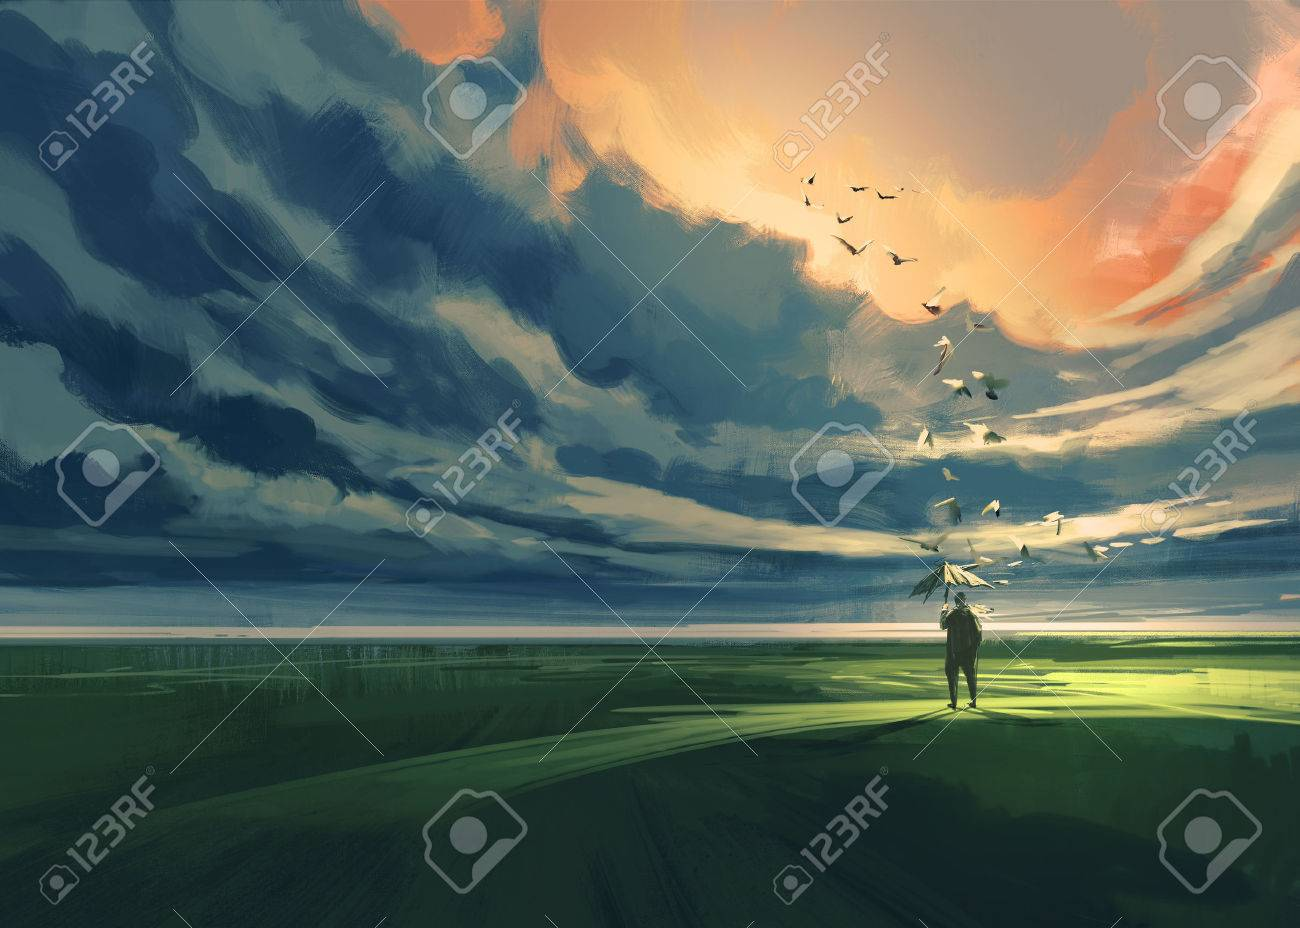 painting of man holding an umbrella standing alone in the meadow watching at the cloudy horizon Stock Photo - 42280504